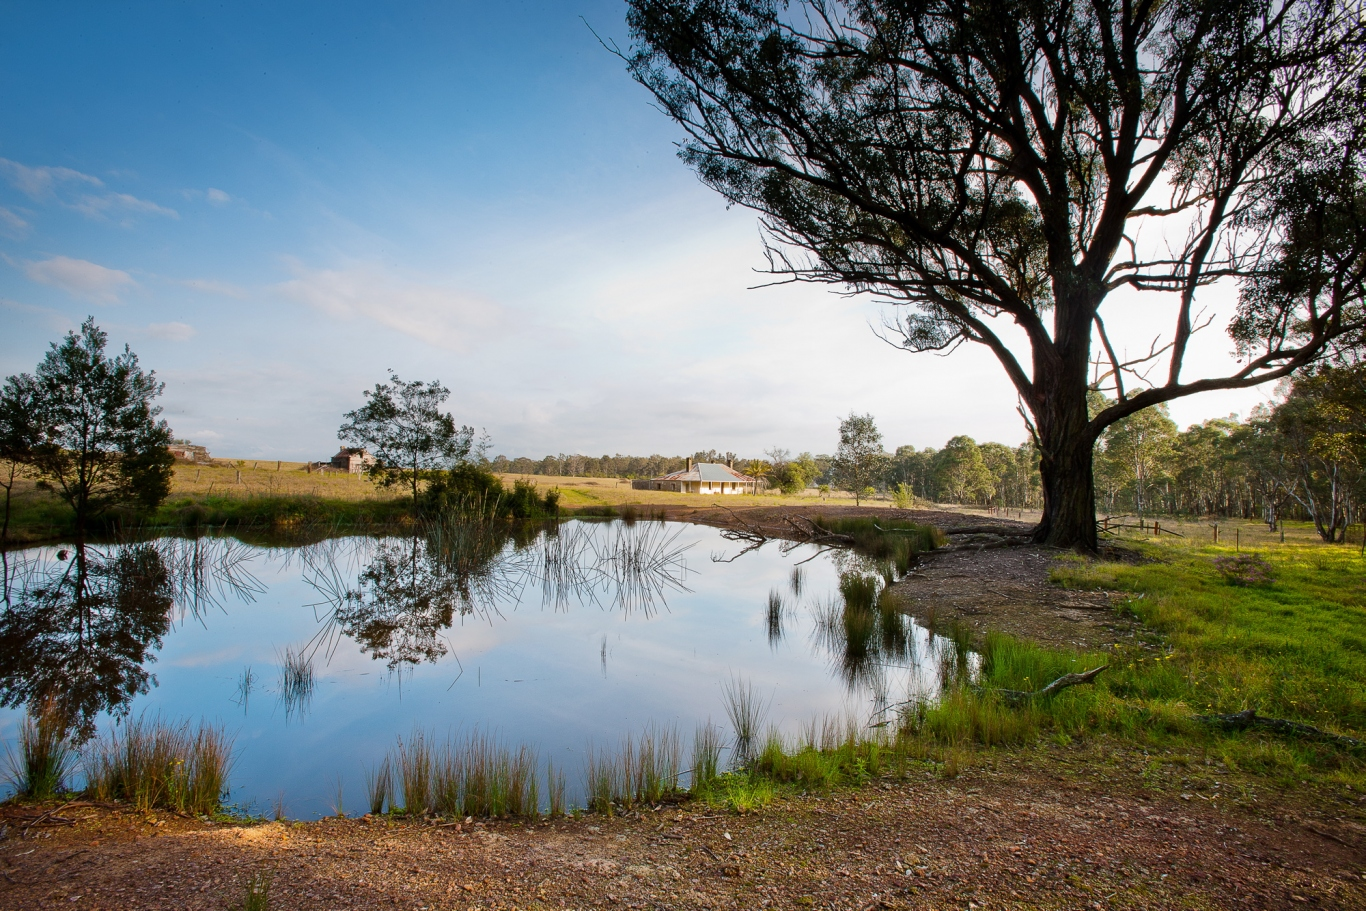 View across dam and paddocks to rural homestead.